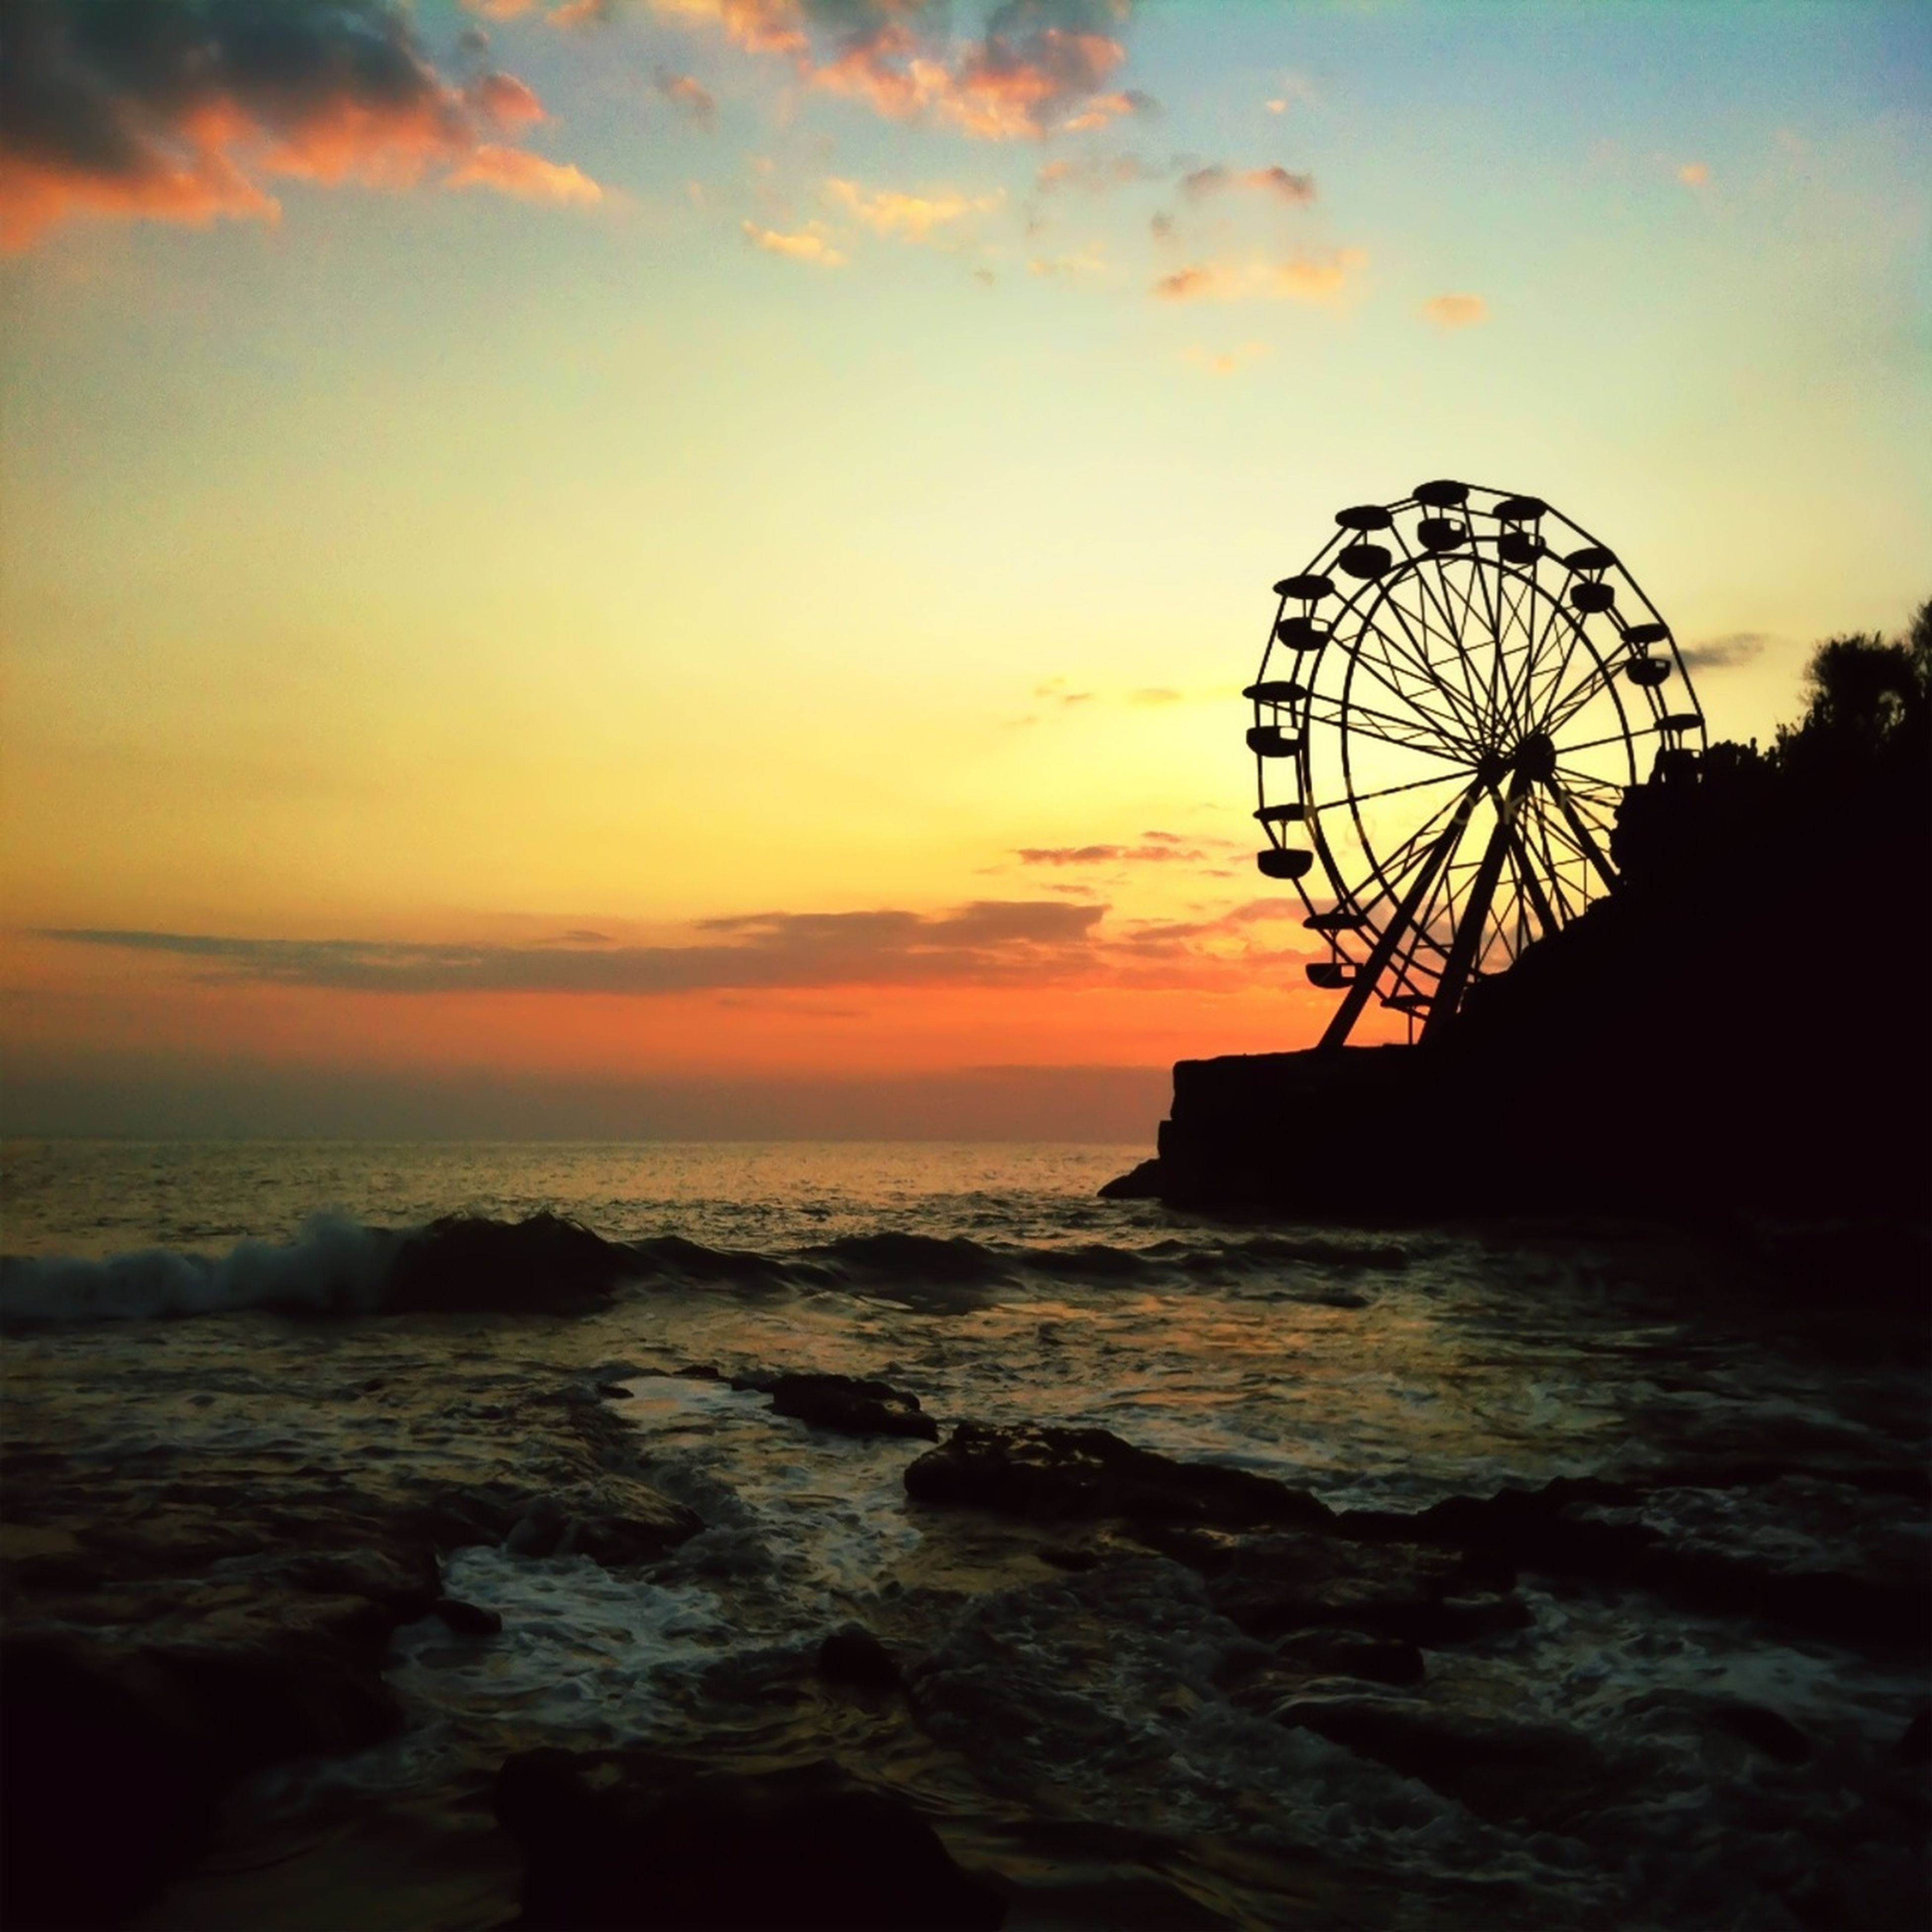 sunset, sea, sky, water, silhouette, horizon over water, beach, ferris wheel, scenics, cloud - sky, tranquil scene, orange color, beauty in nature, tranquility, shore, nature, dusk, cloud, idyllic, amusement park